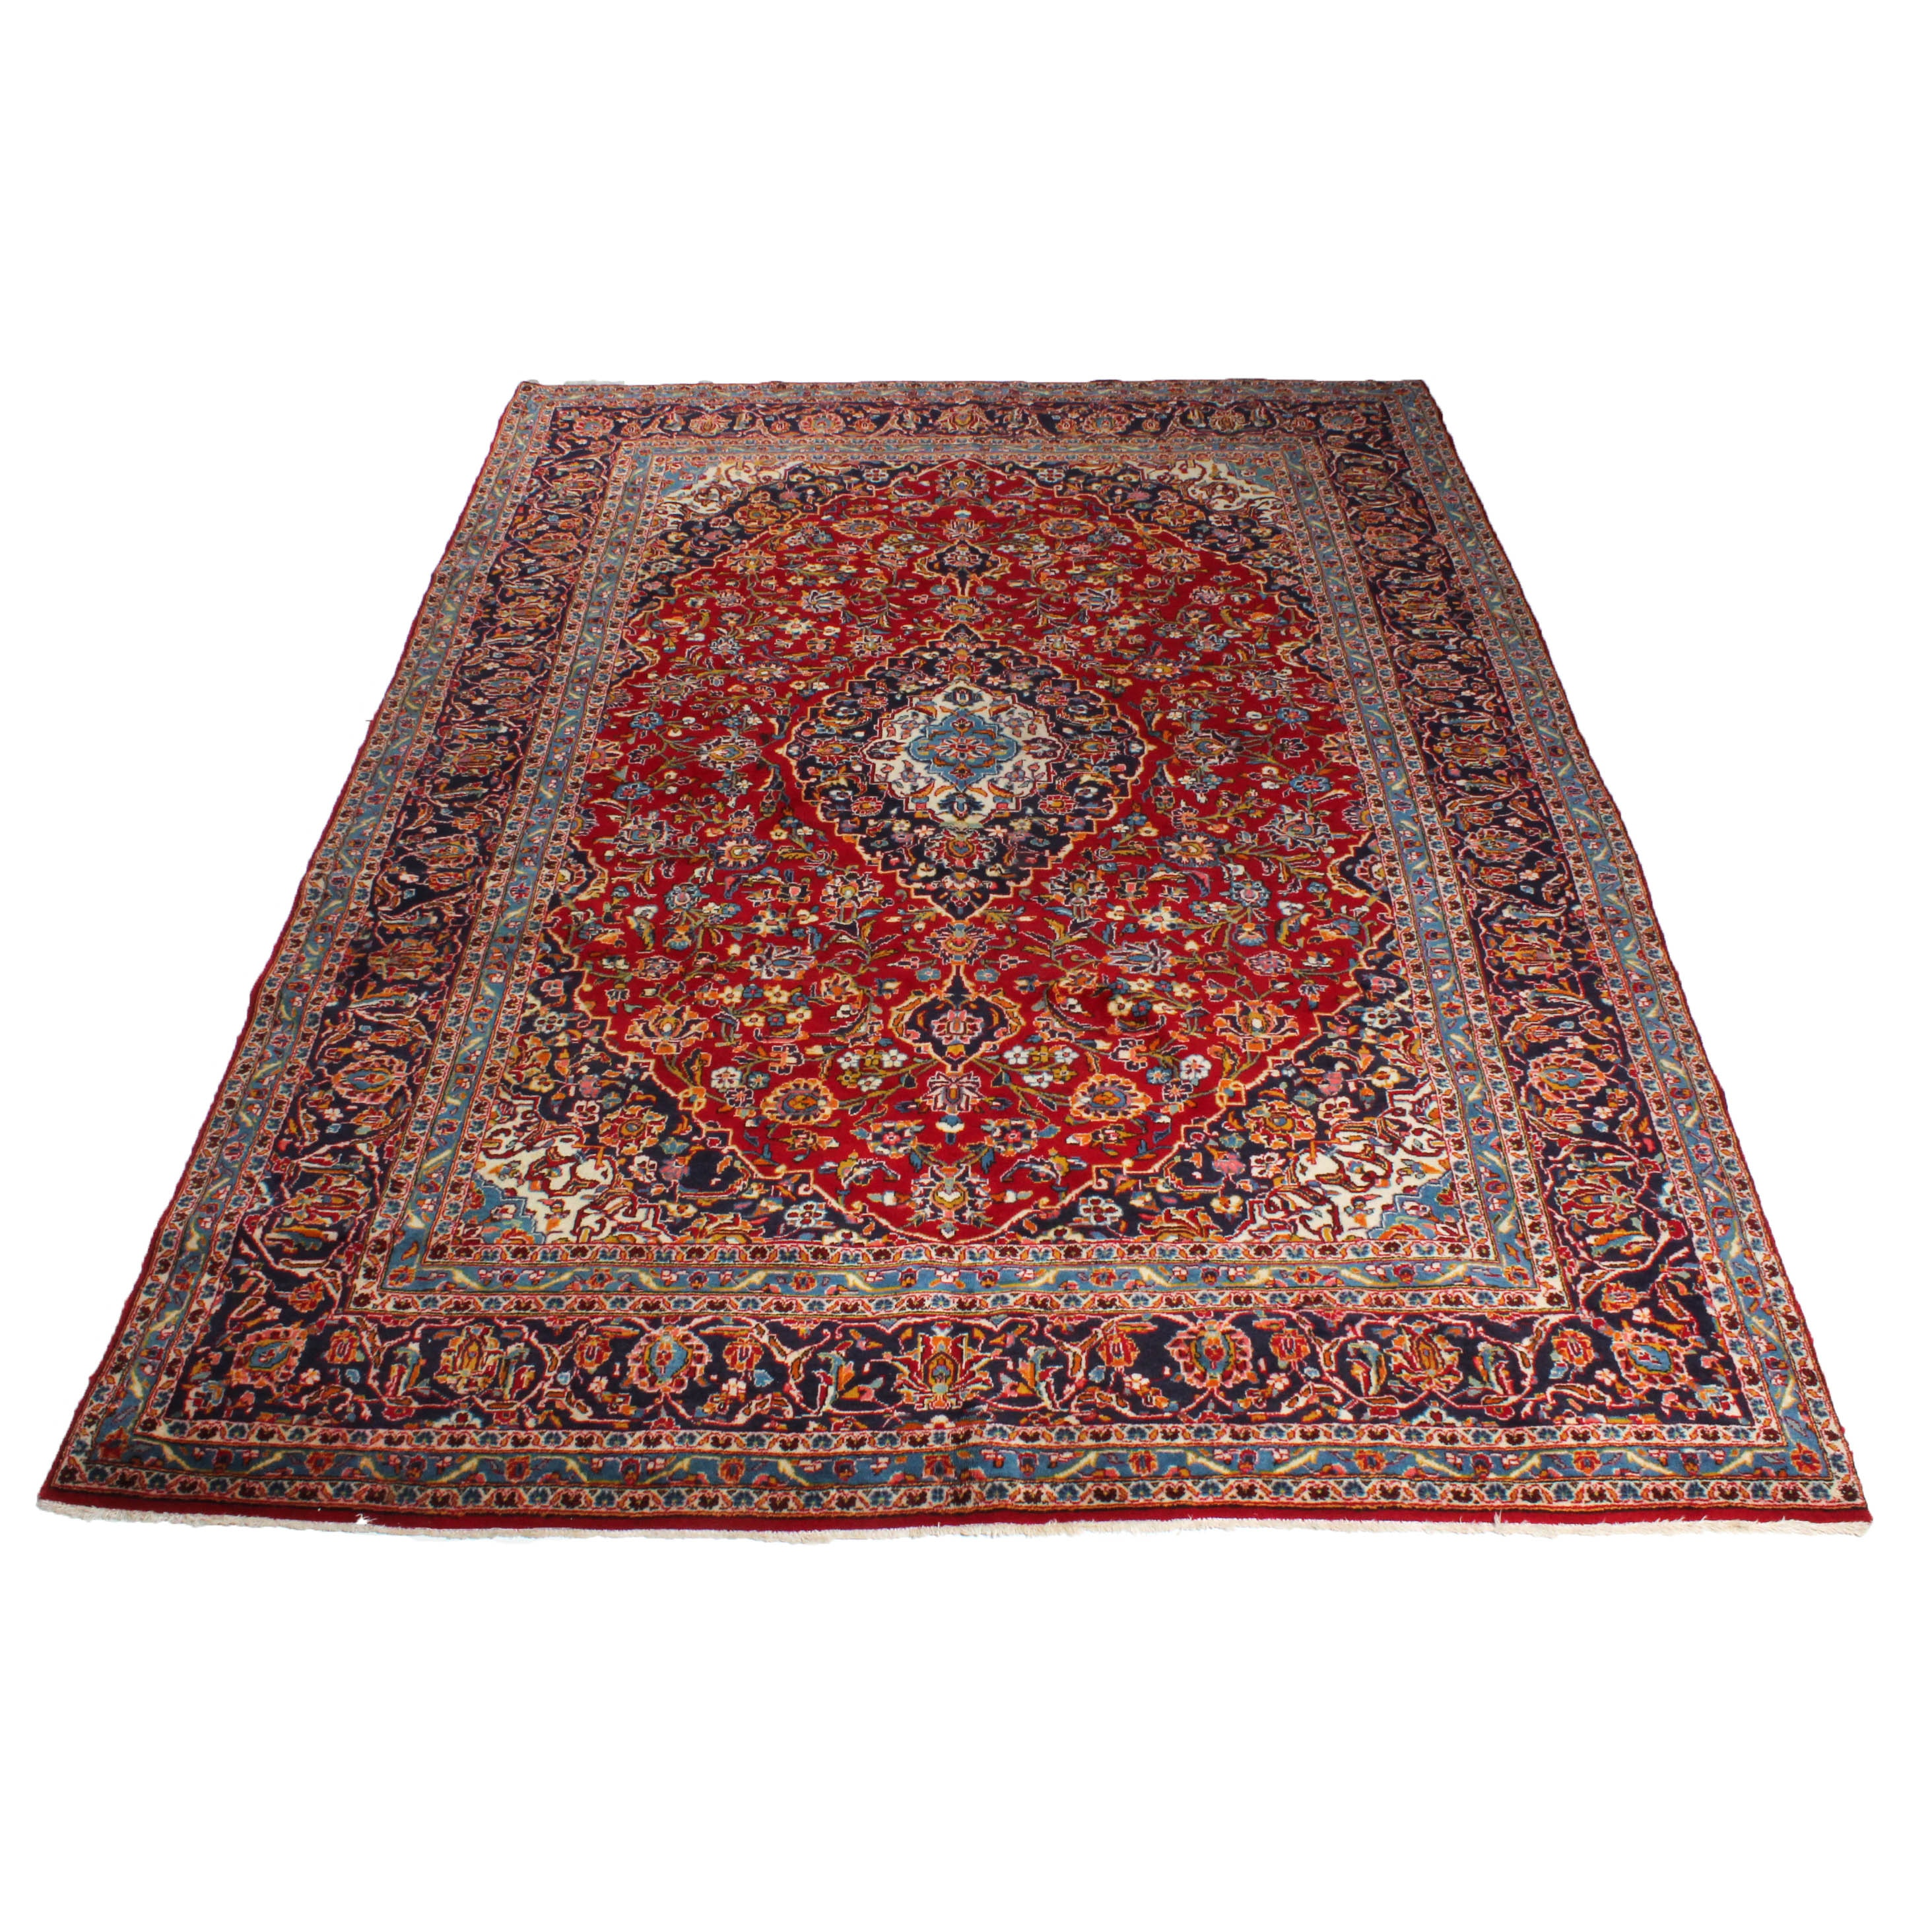 7'10 x 11'7 Hand-Knotted Persian Ardekan Kashan Room Size Rug